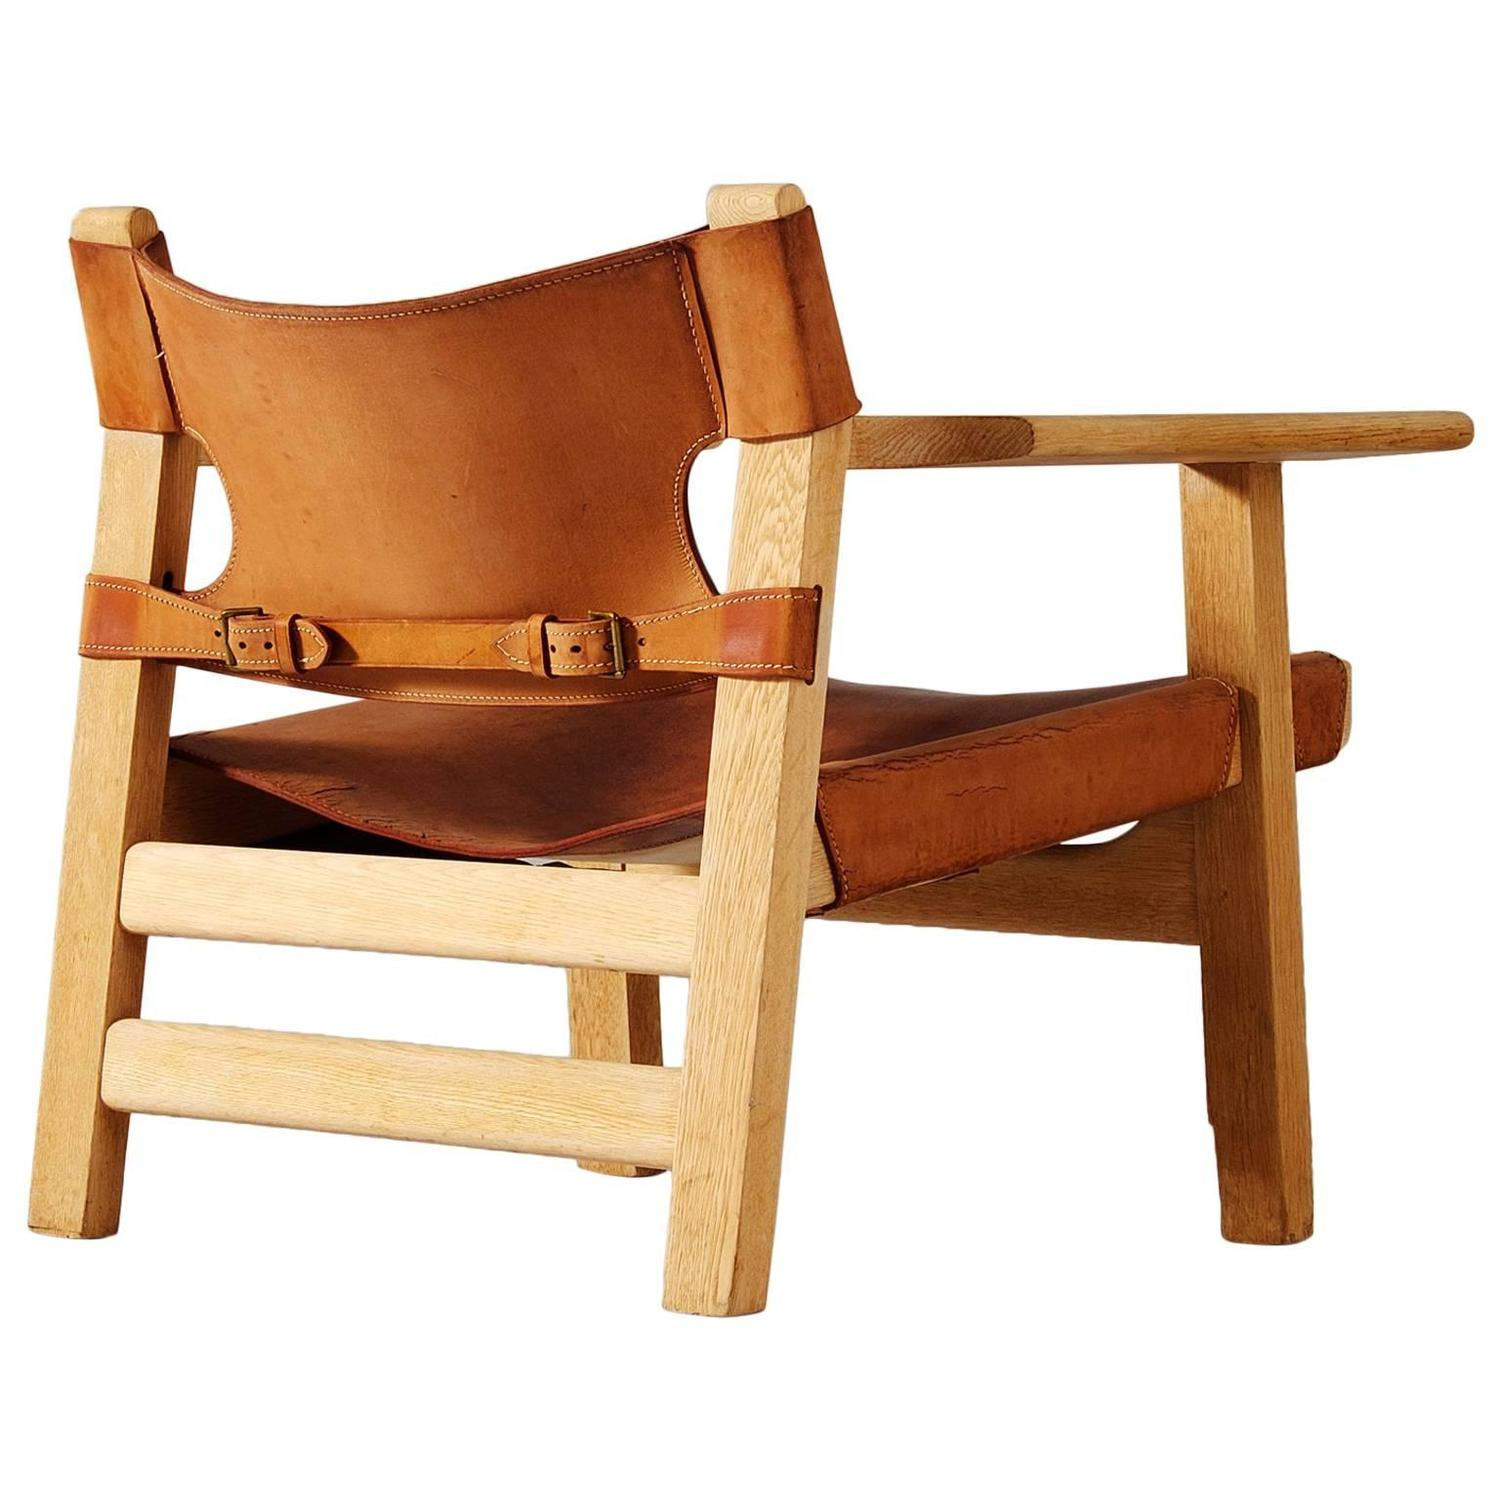 b rge mogensen 39 spanish chair 39 in solid oak and cognac. Black Bedroom Furniture Sets. Home Design Ideas